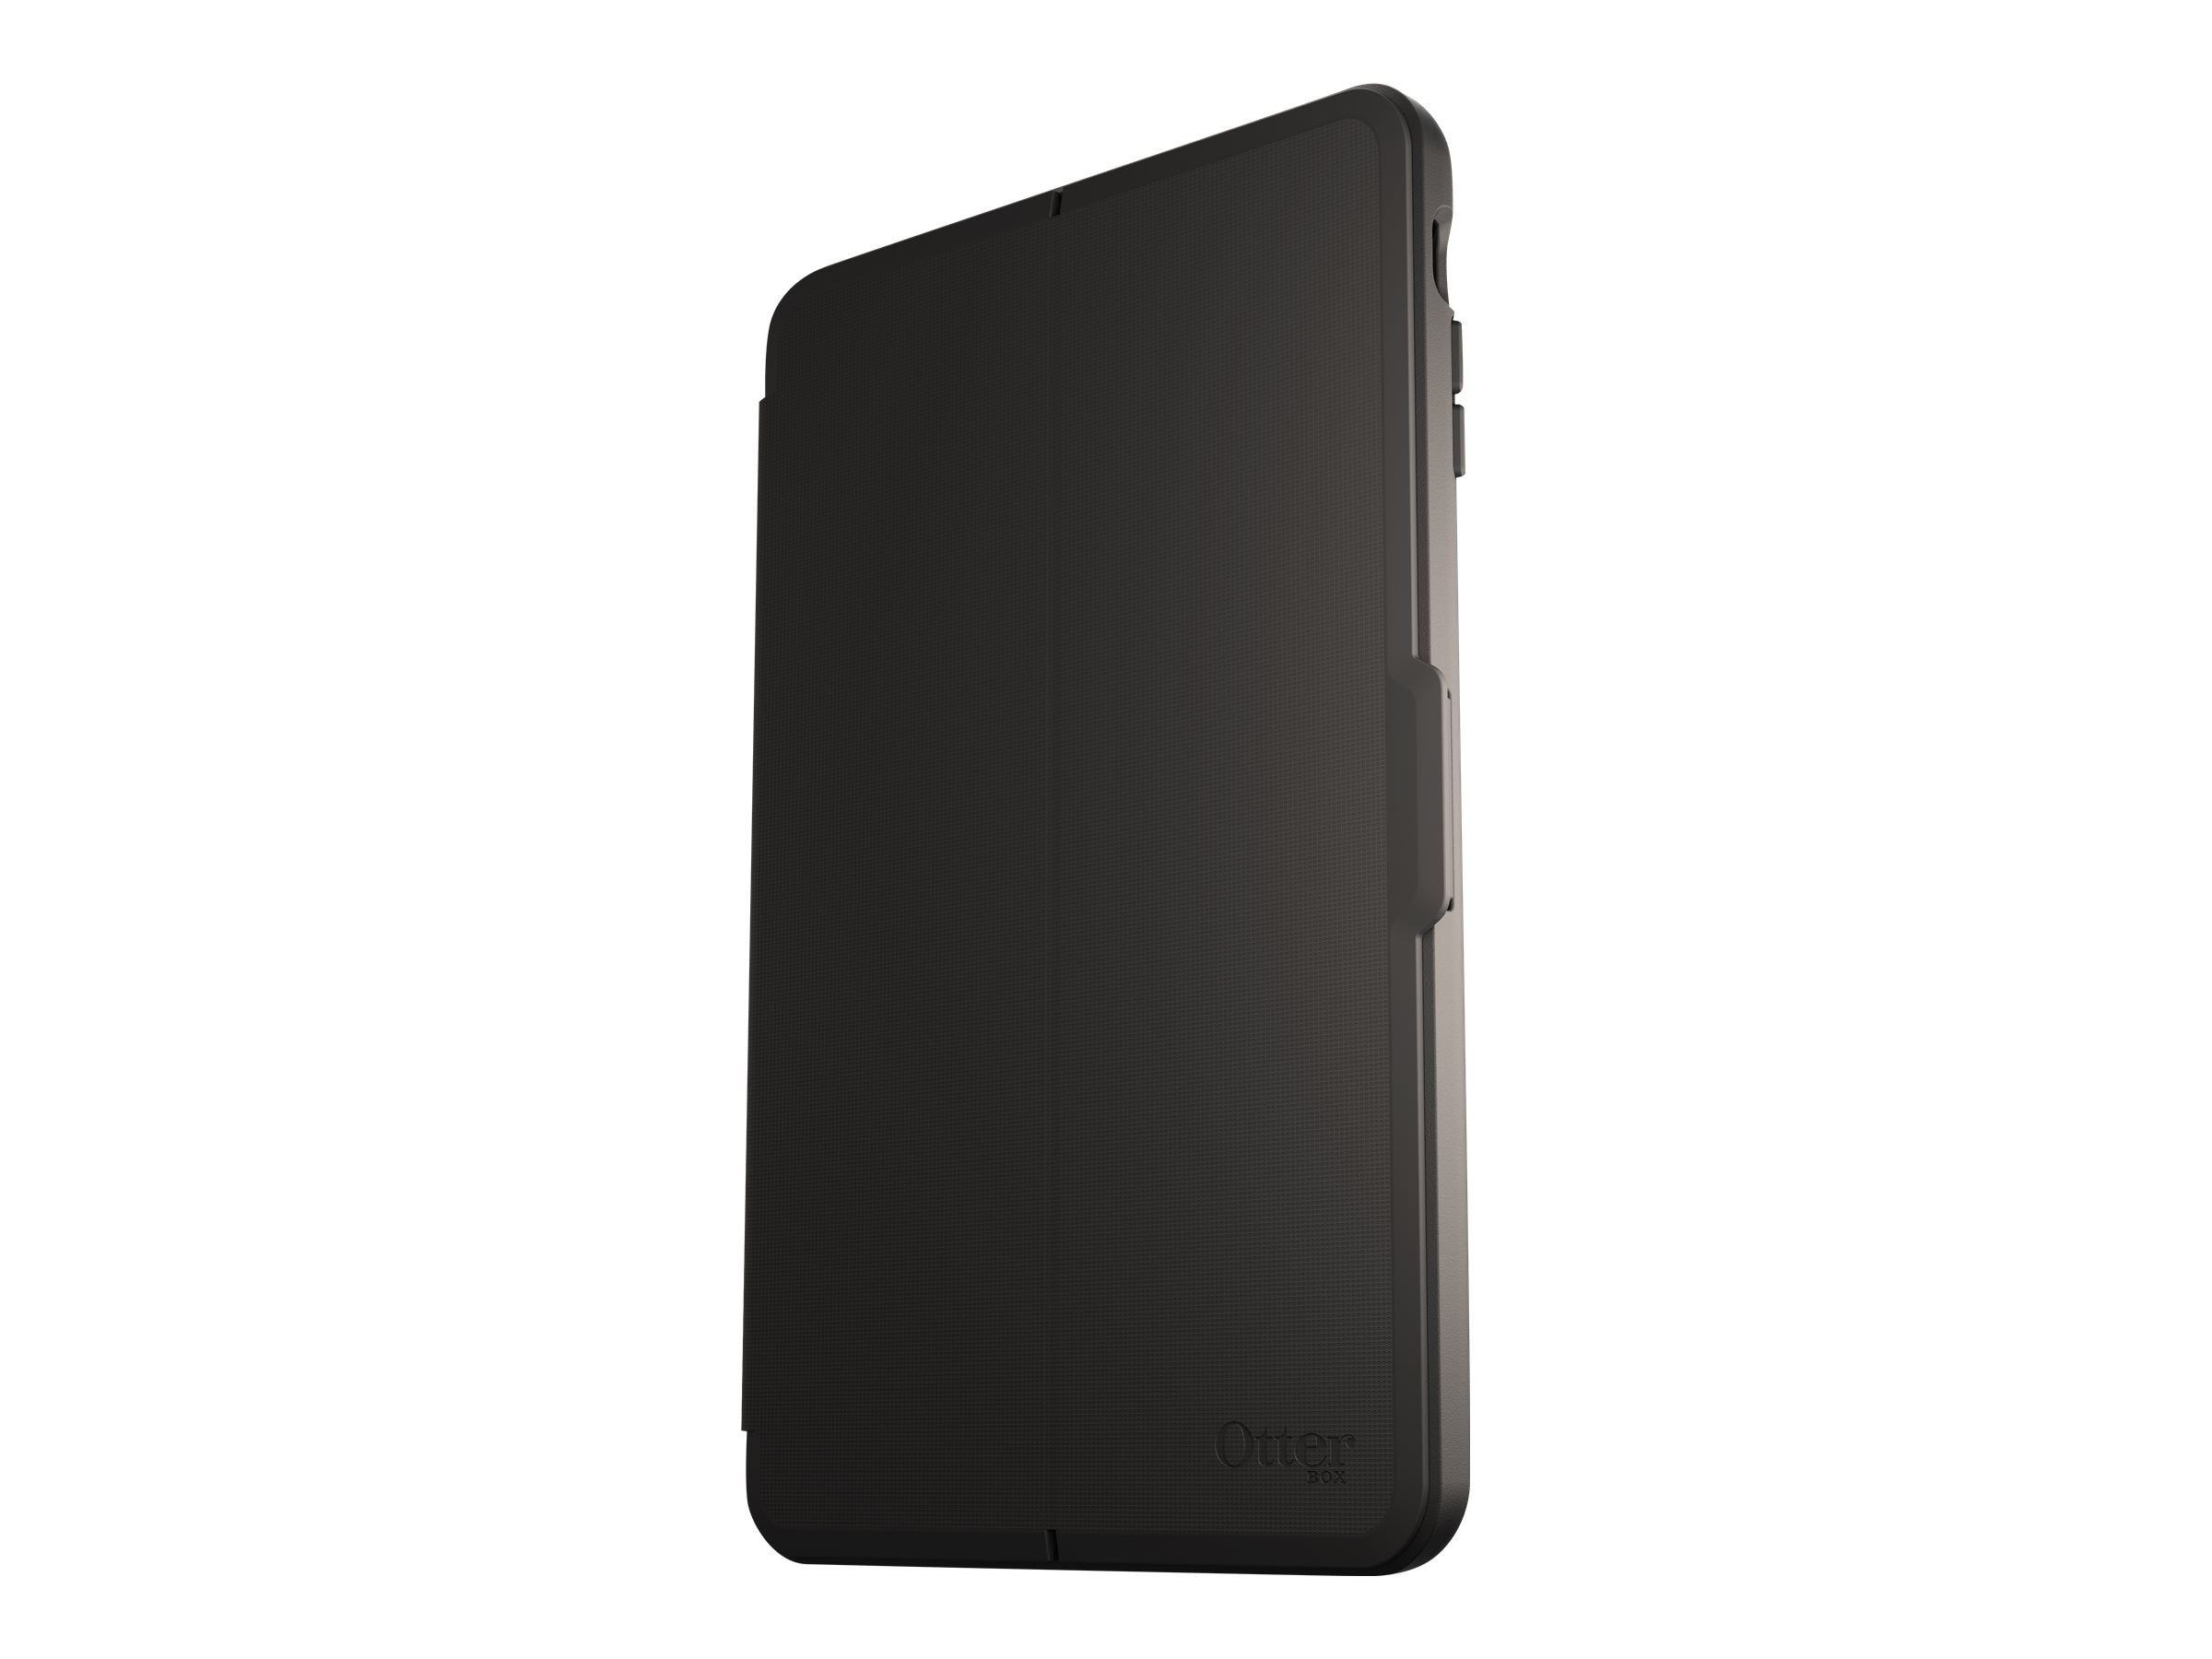 OtterBox Profile for iPad mini, Moonless Night